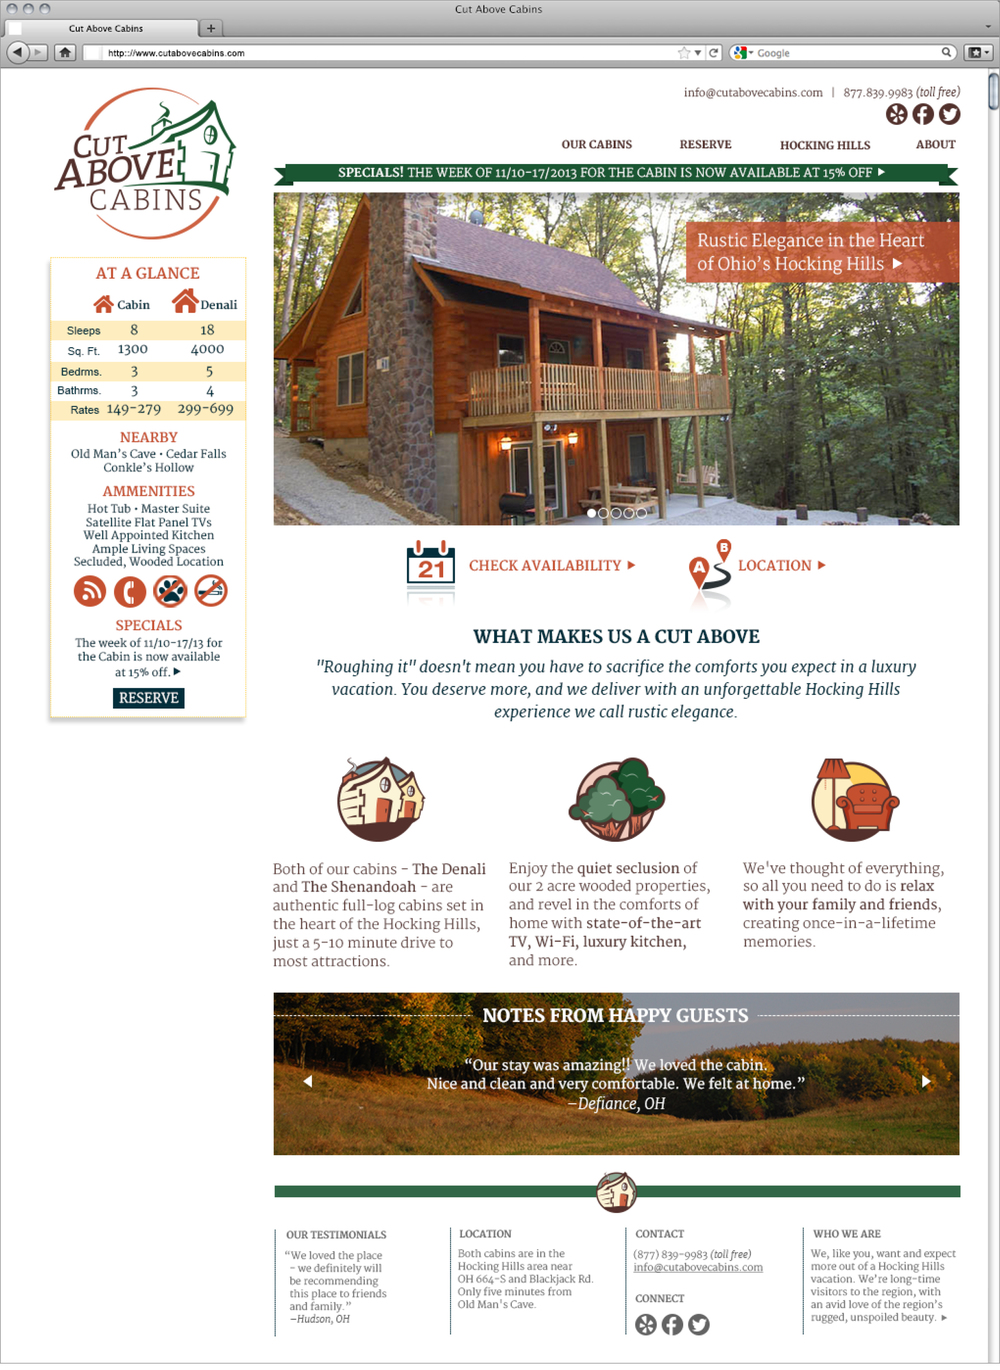 Web coding and development by Nathan Talbott. The final site can be viewed at http://www.cutabovecabins.com/